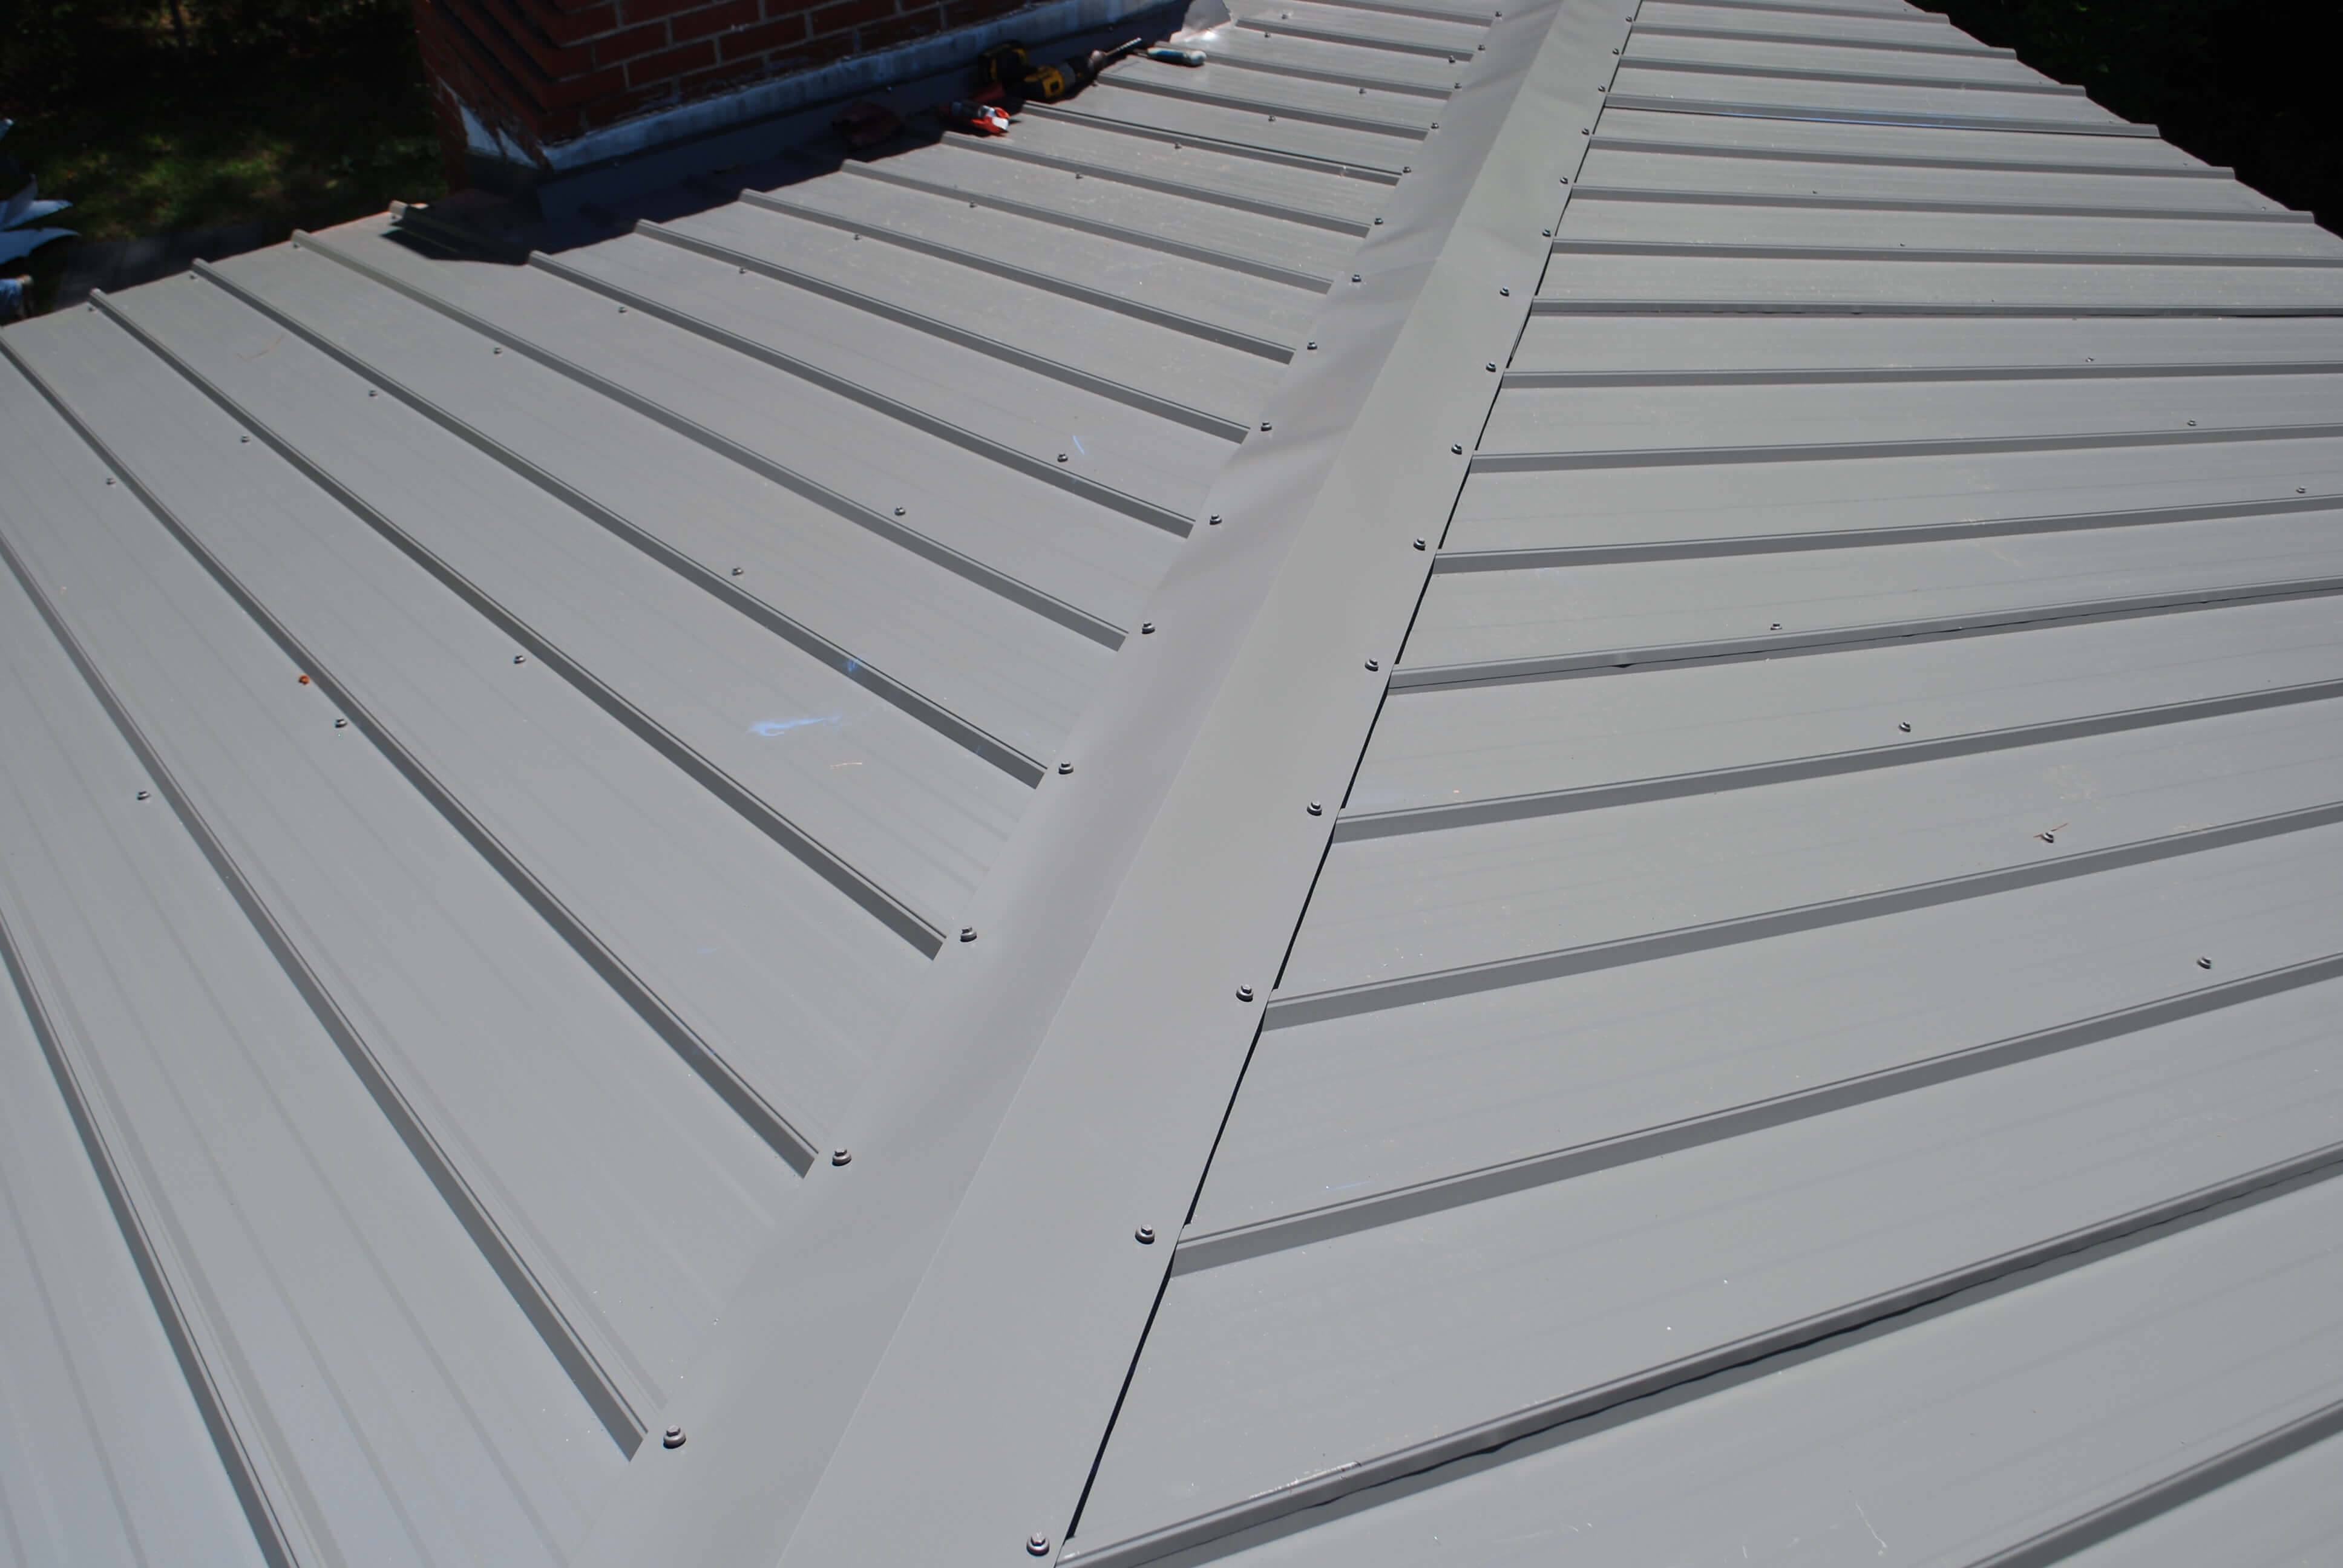 36 Quot Wide Master Rib Panels For Metal Roofing Applications